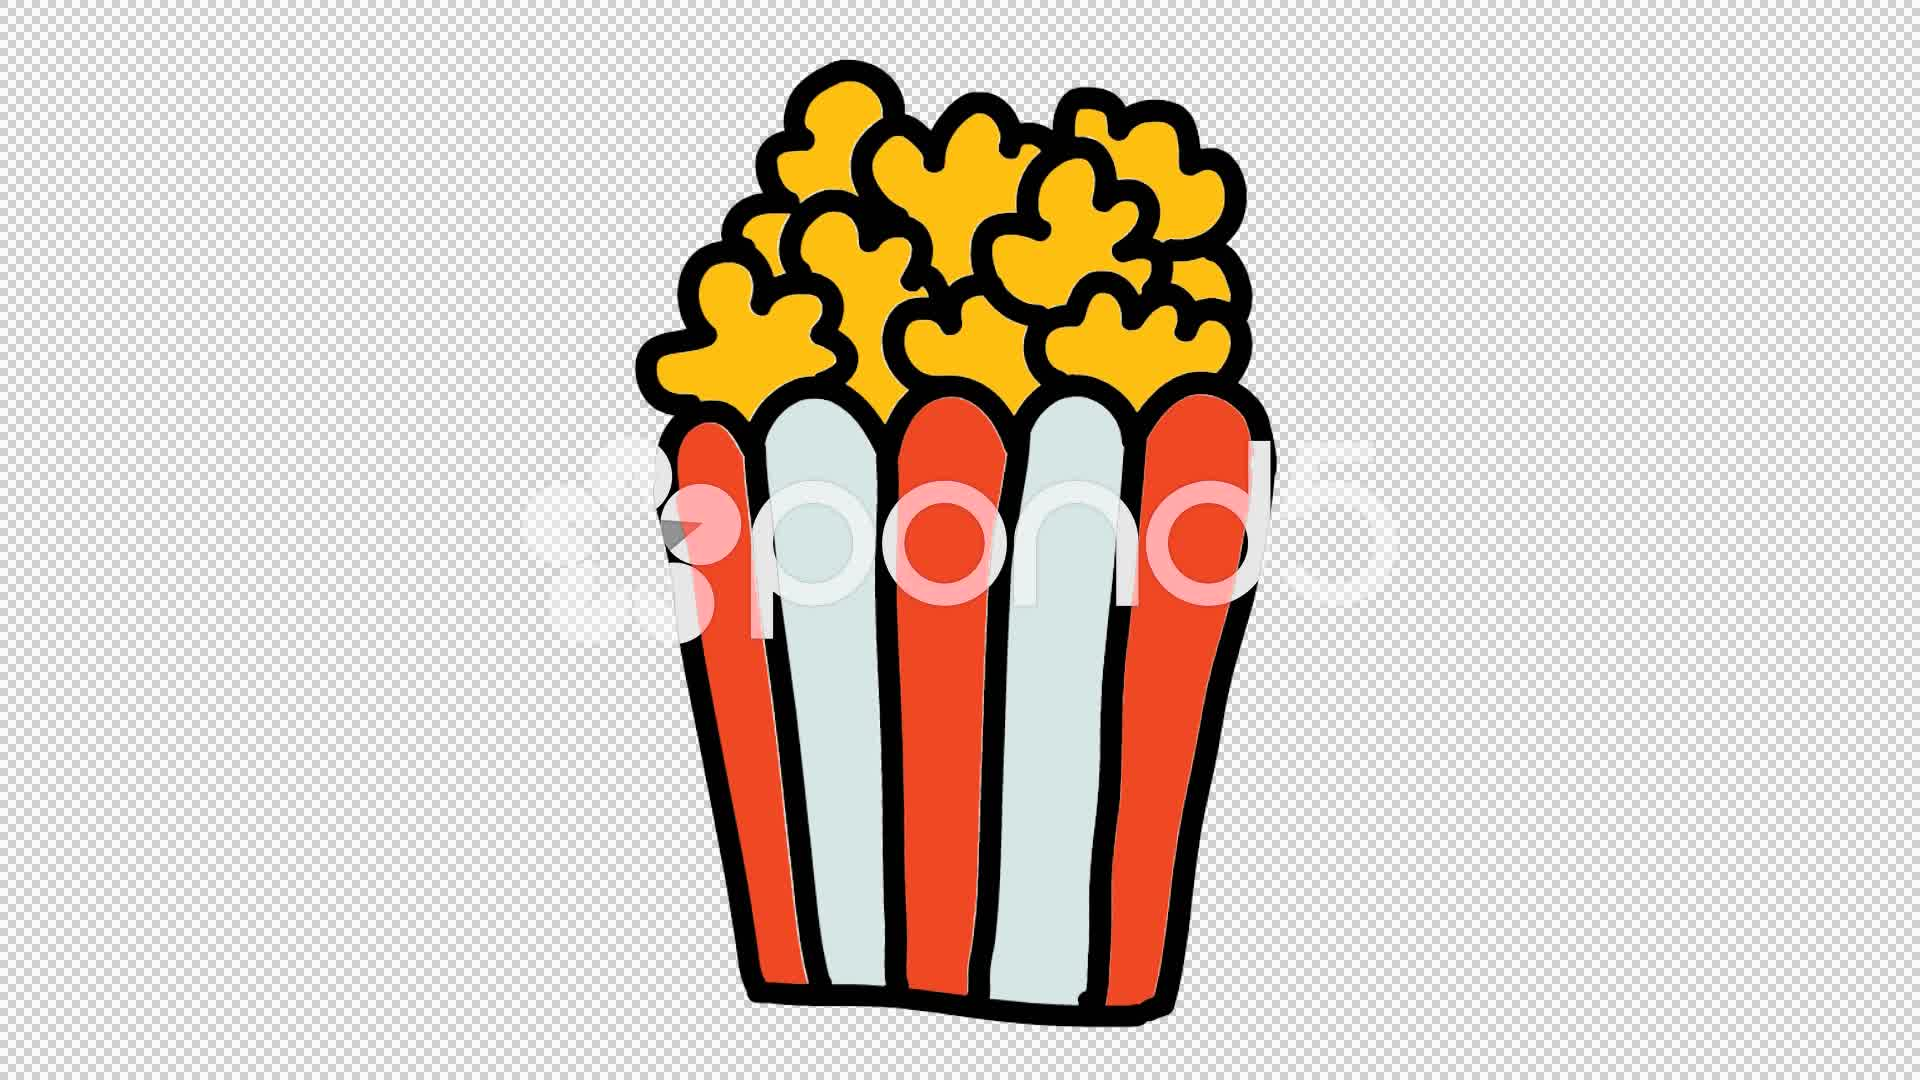 1920x1080 Popcorn Animation With Transparent Background ~ Footage